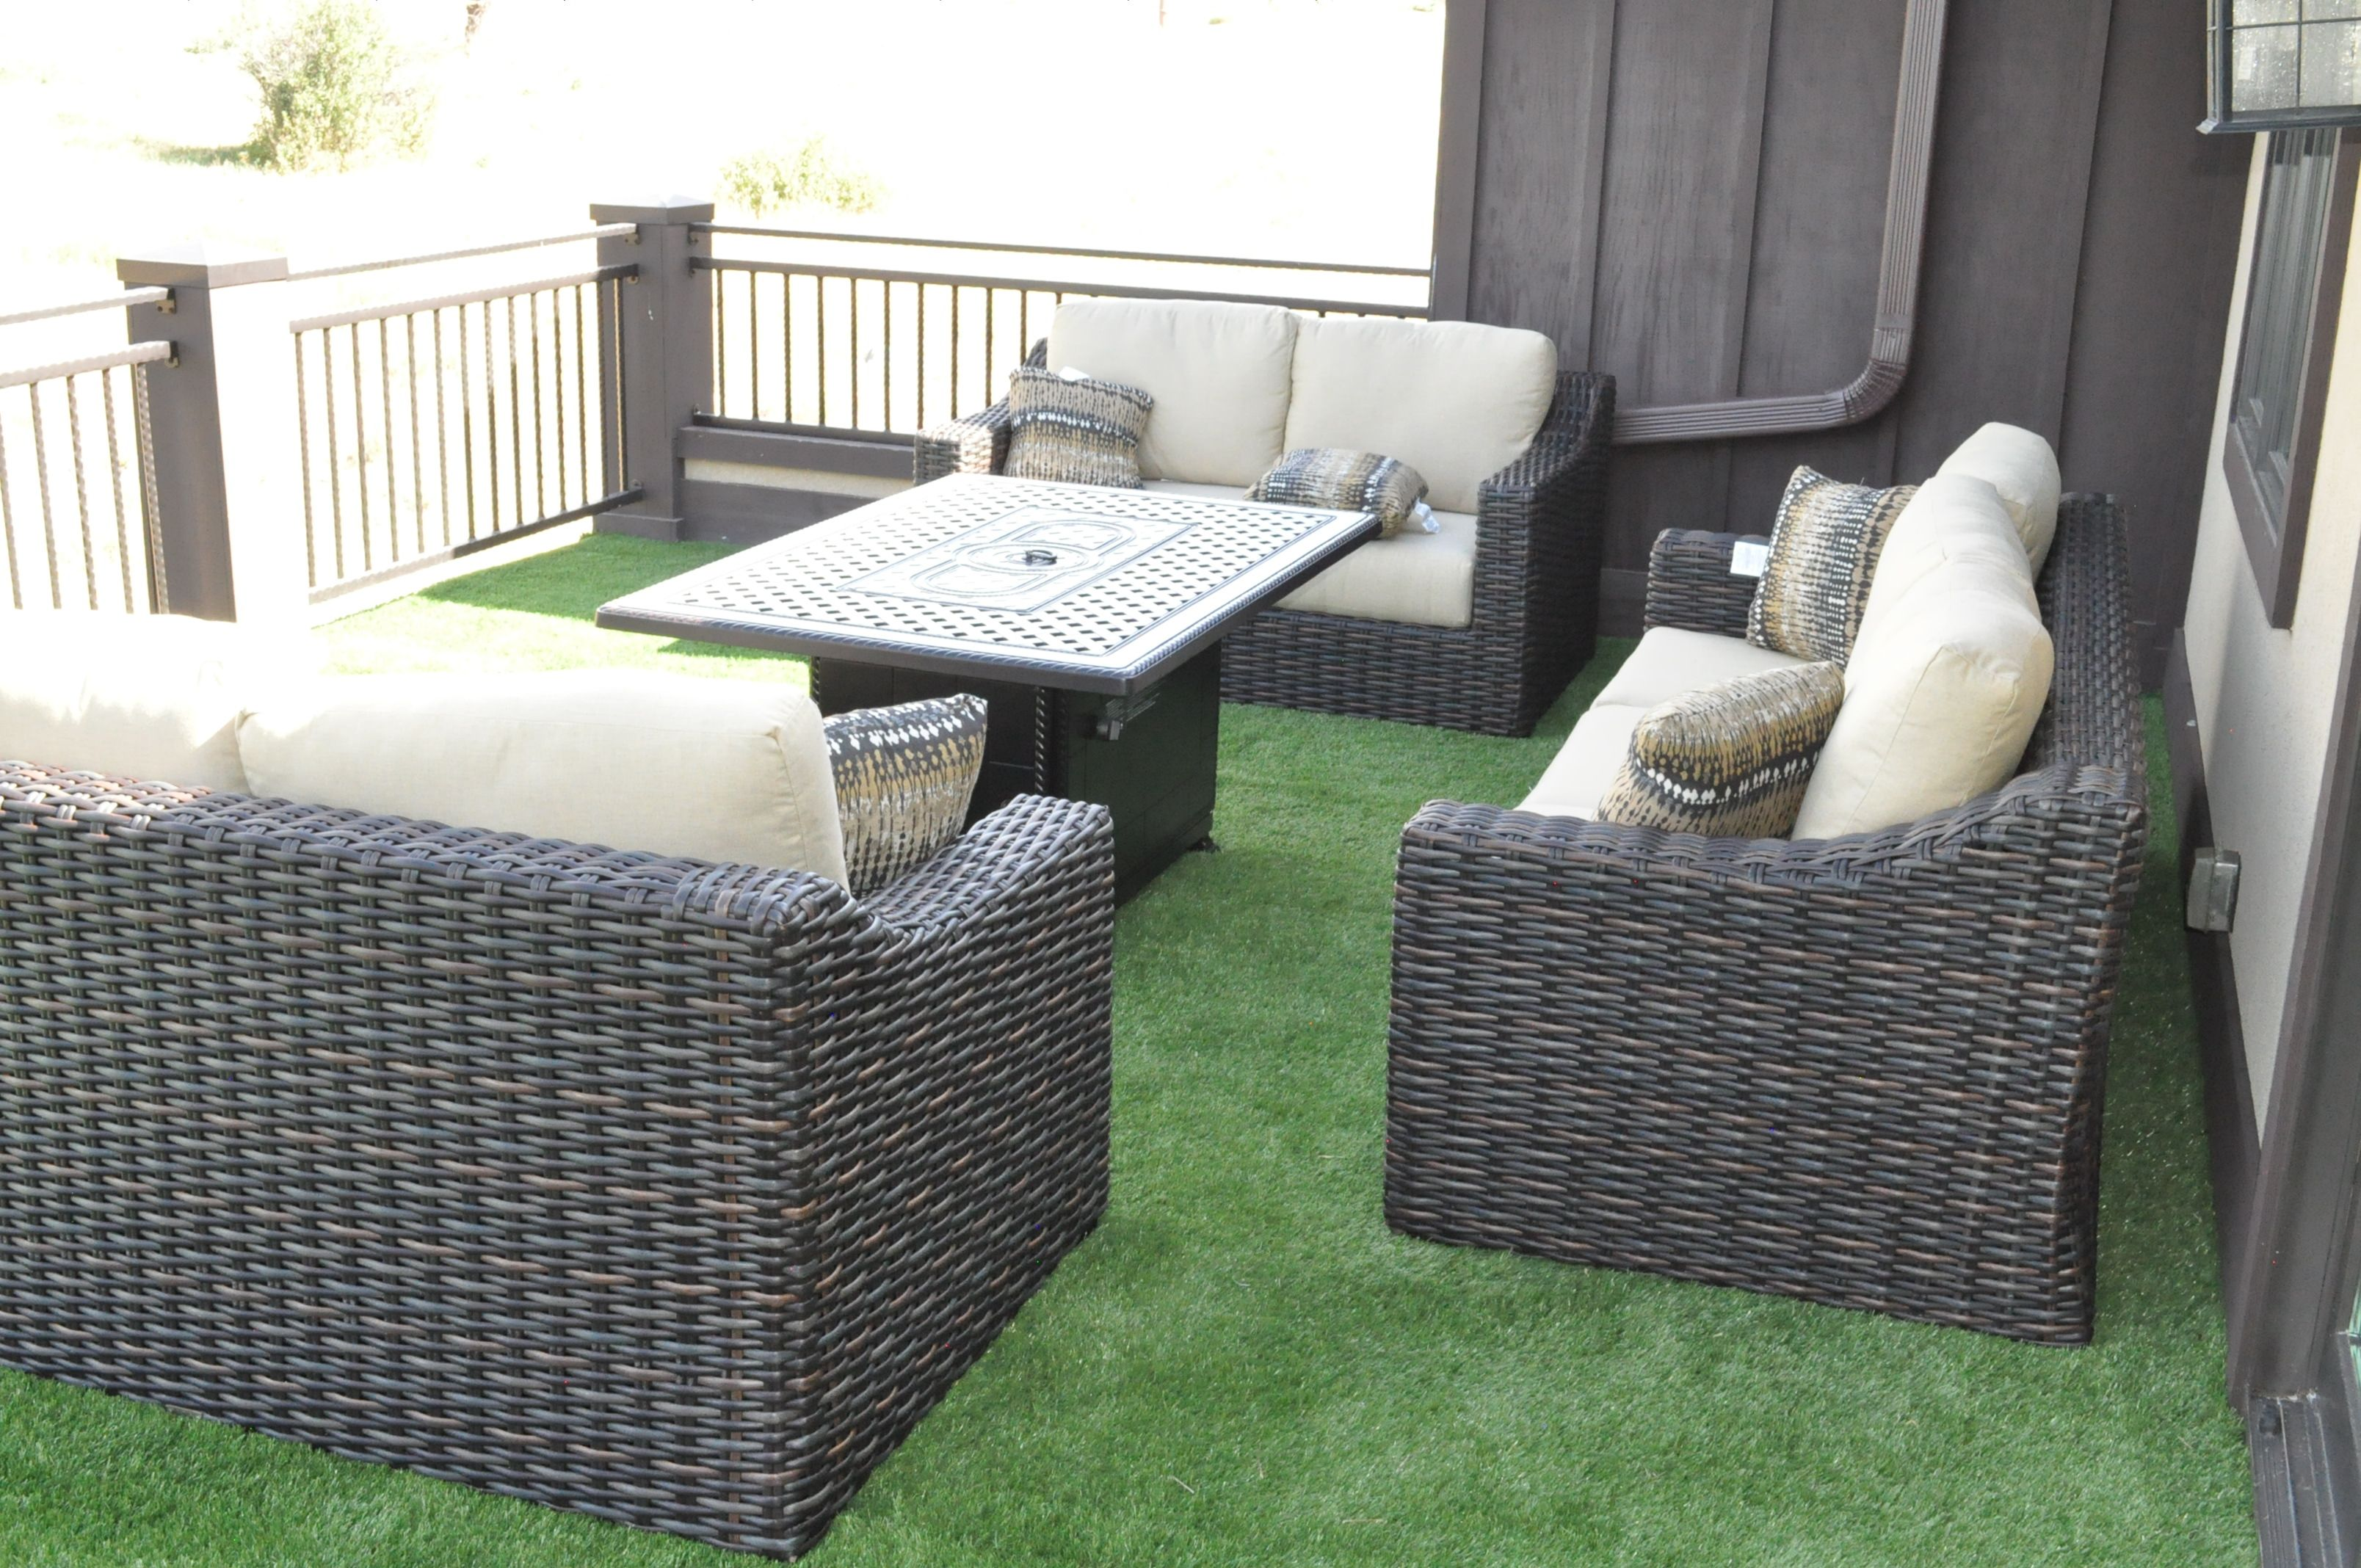 0916a Turf Lawn Sitting Area Turf Artificial Turf Artificial